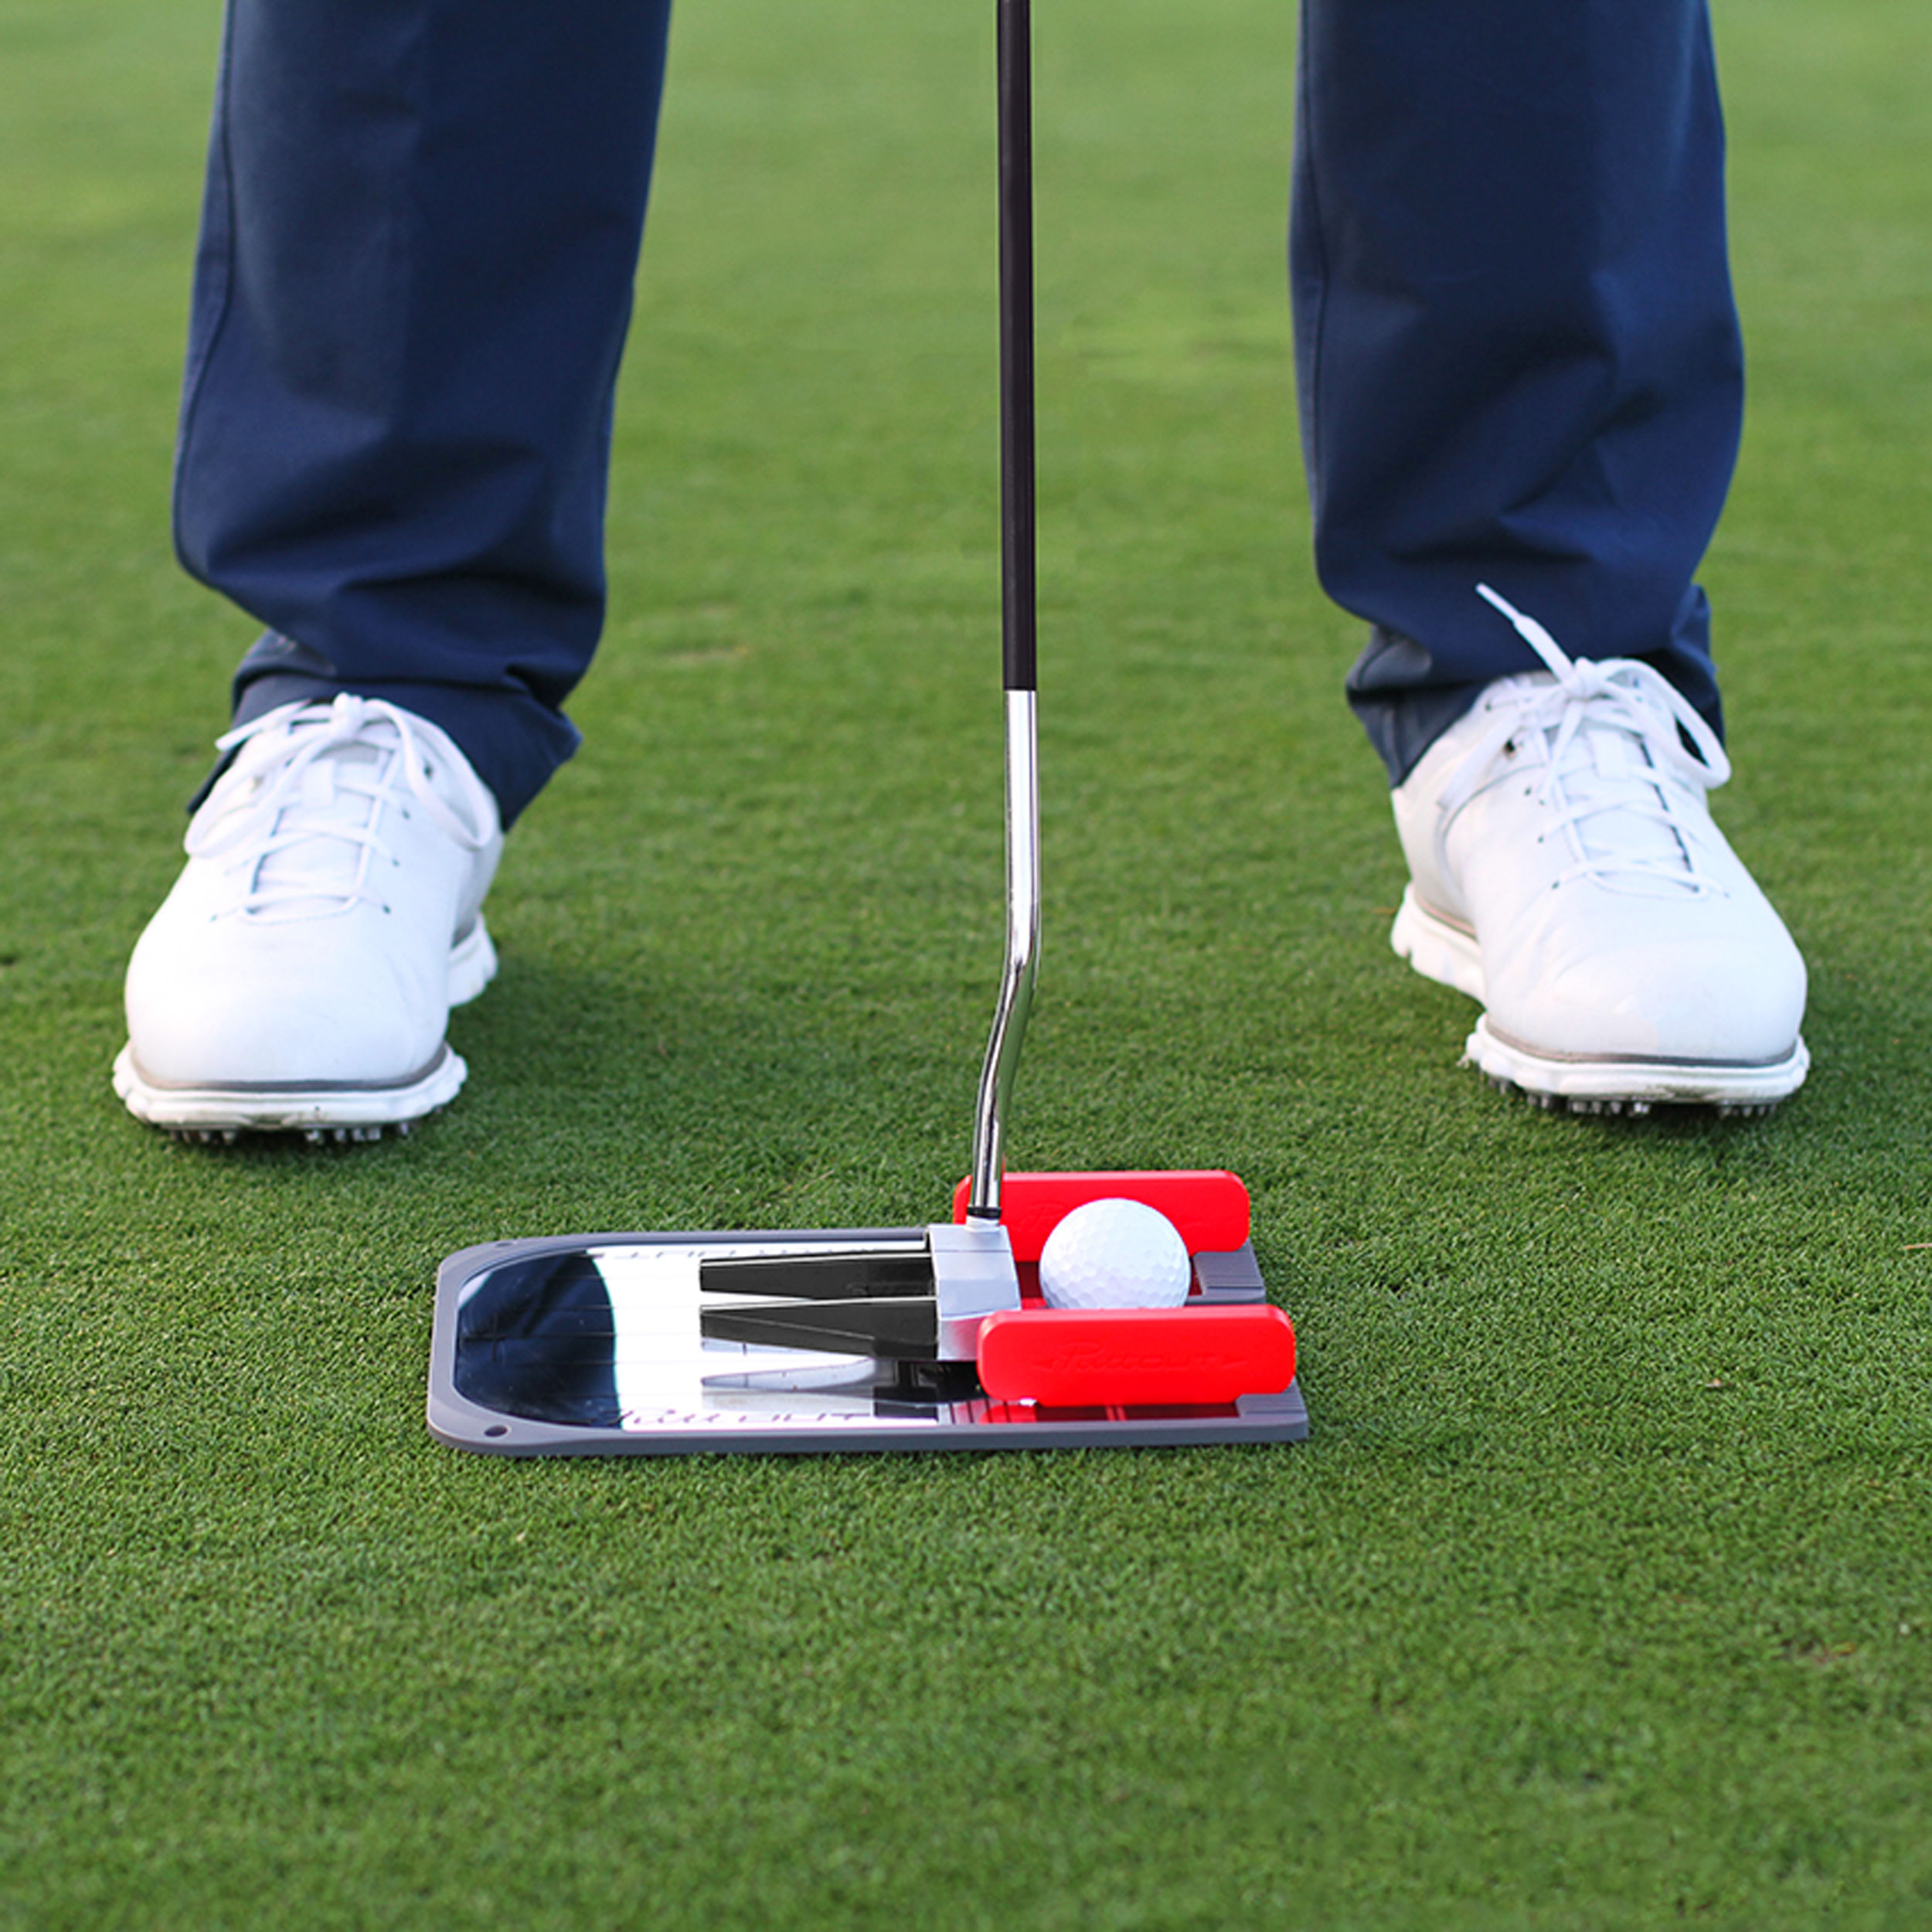 Use anywhere - With a compact, understated design, use the mirror to practice at home, at work, at the hotel or on the practice green. Wherever you need the practice, the PuttOUT Putting Mirror is there to help.